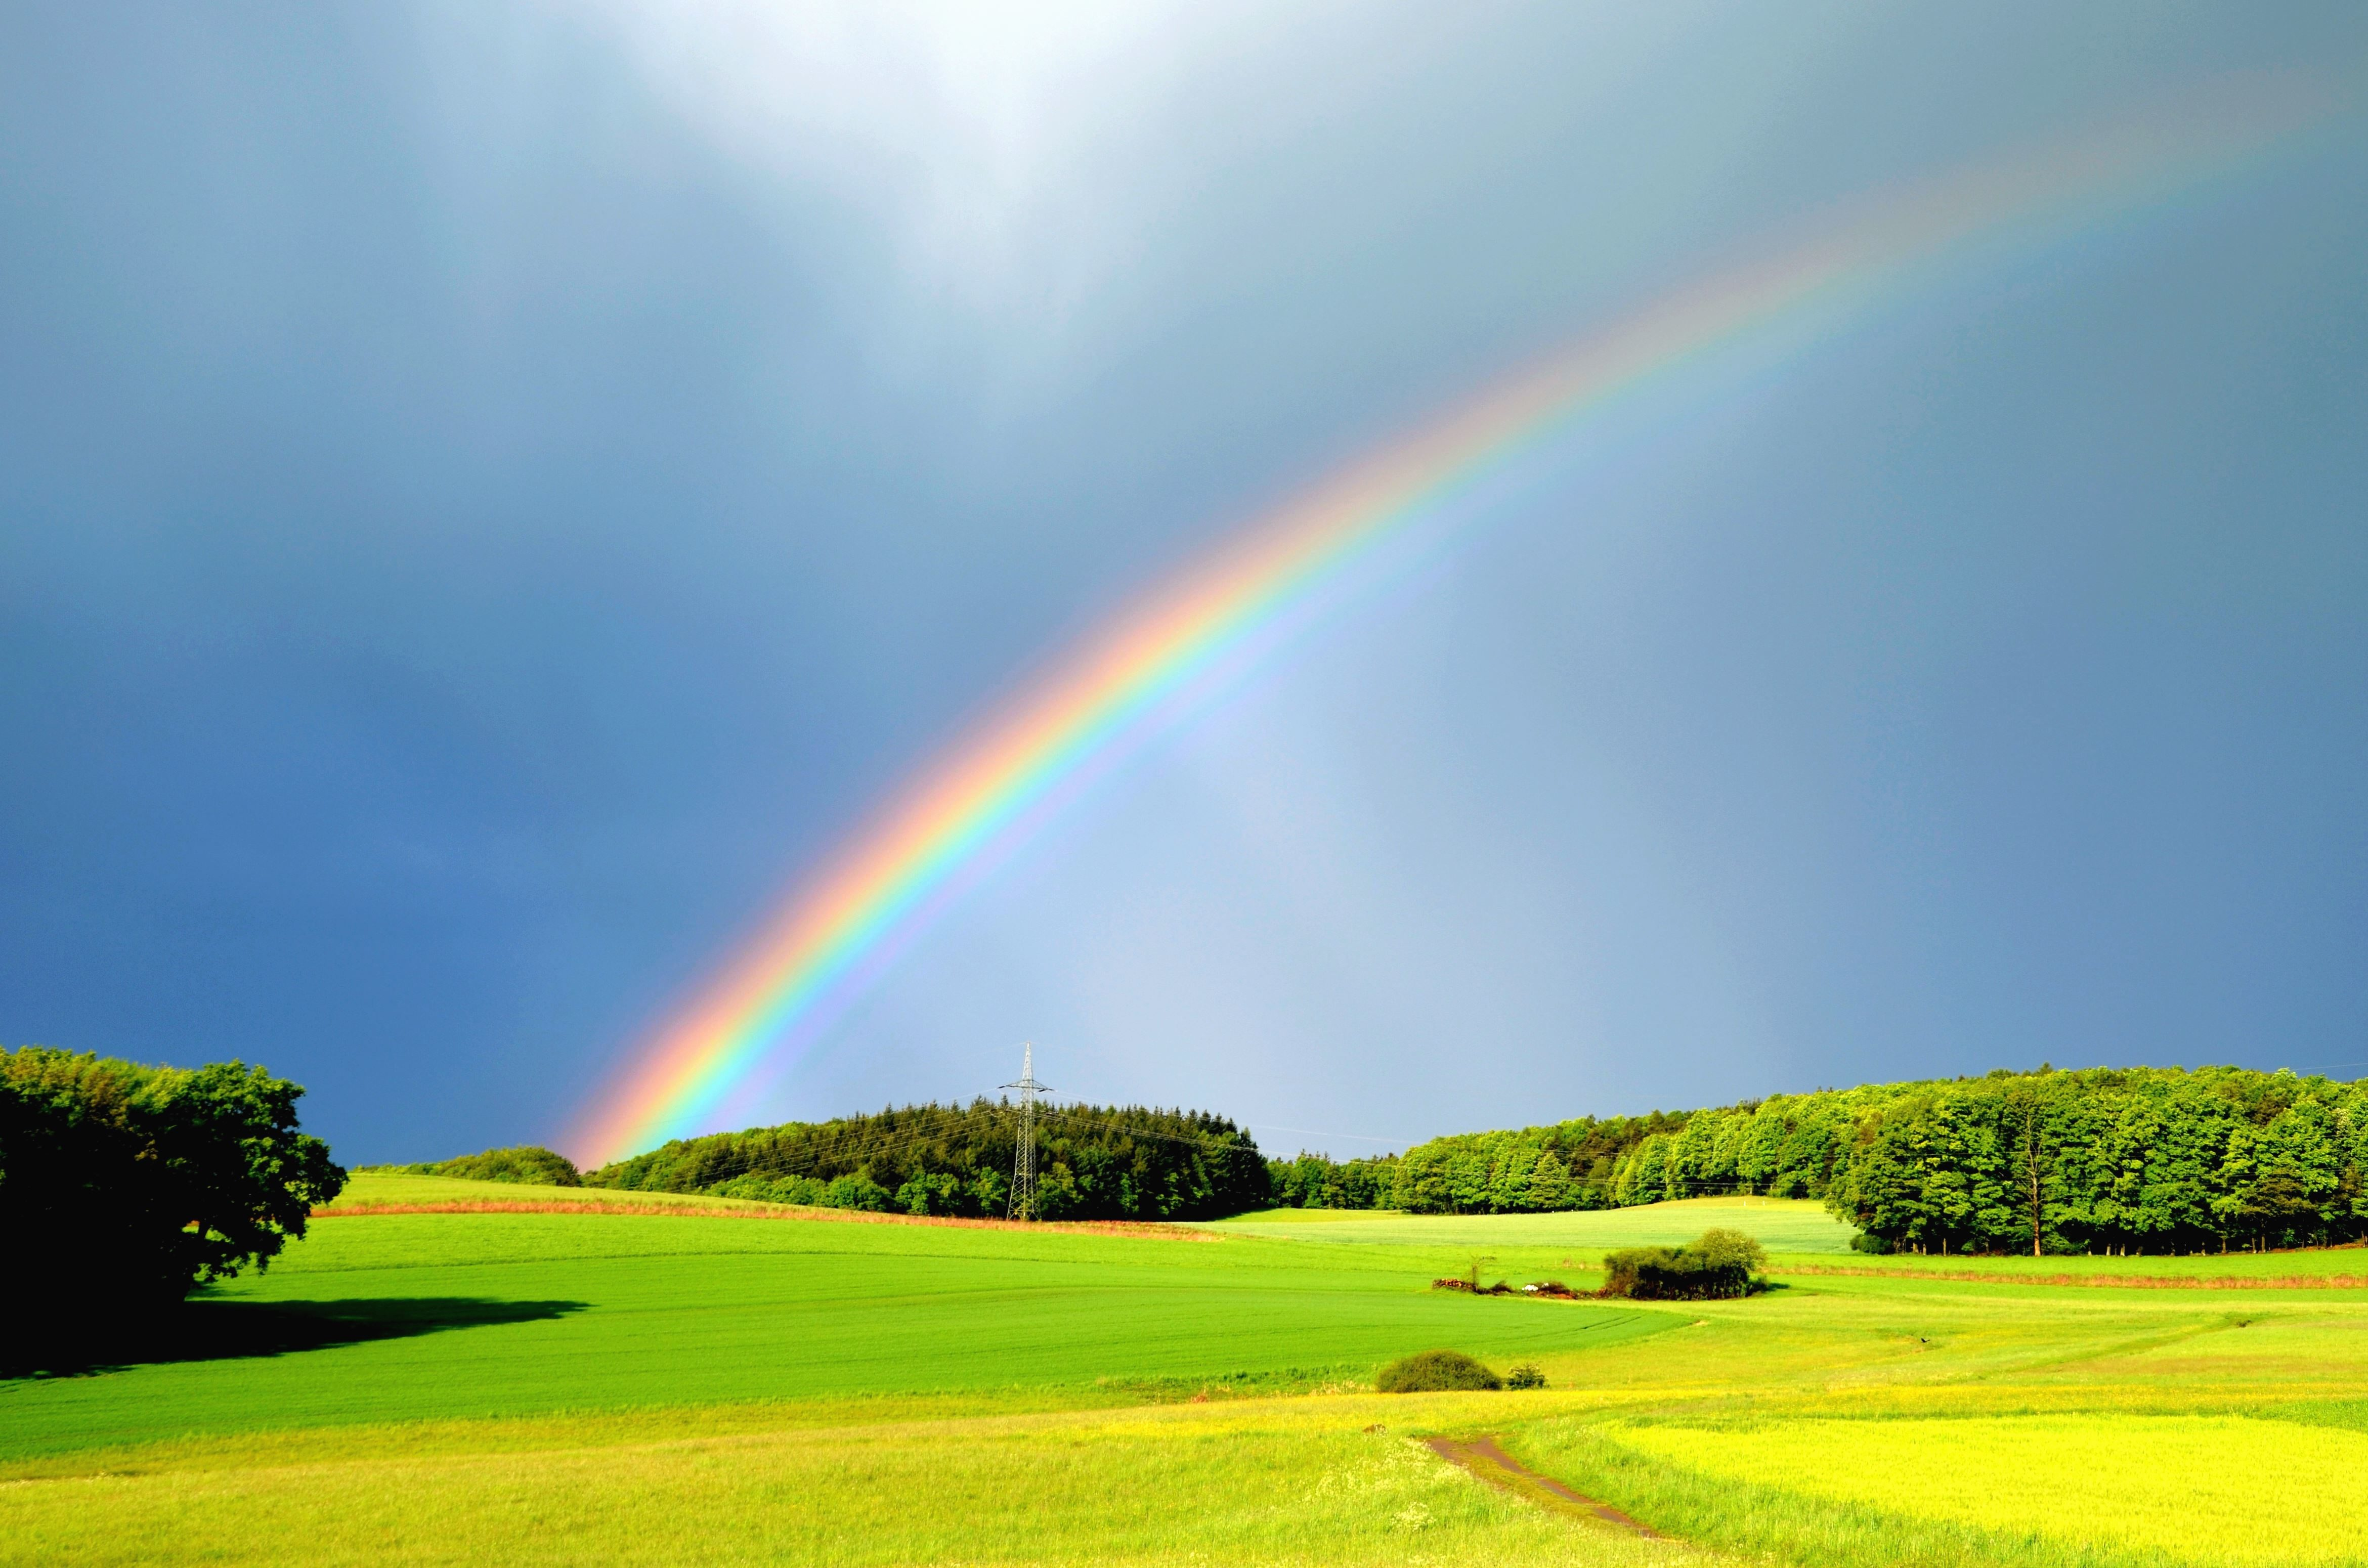 Wallpaper Full Color Hd Free Picture Rain Rainbow Meadow Forest Colorfull